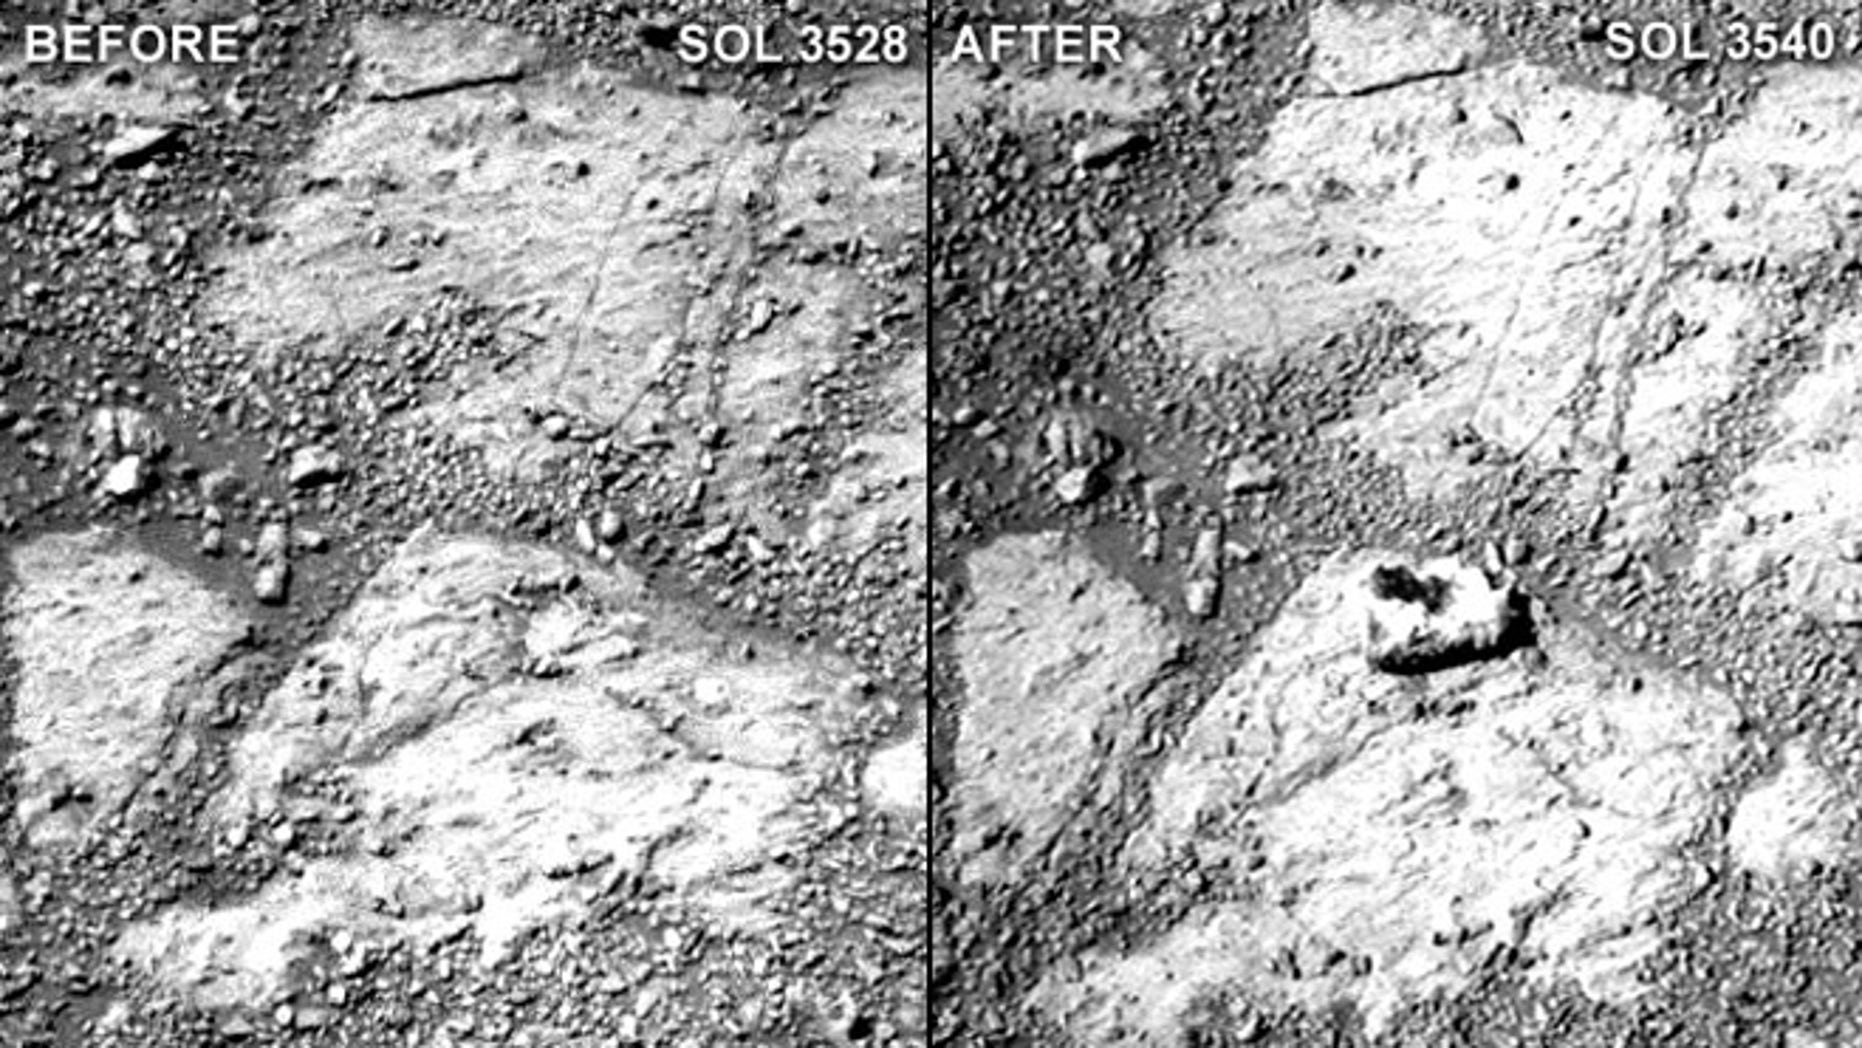 "A comparison of two raw Pancam photographs from sols 3528 and 3540 of Opportunity's mission (a sol is a Martian day). Notice the ""jelly doughnut""-sized rock in the center of the photograph to the right. Minor adjustments for brightness and contrast were made to these images."